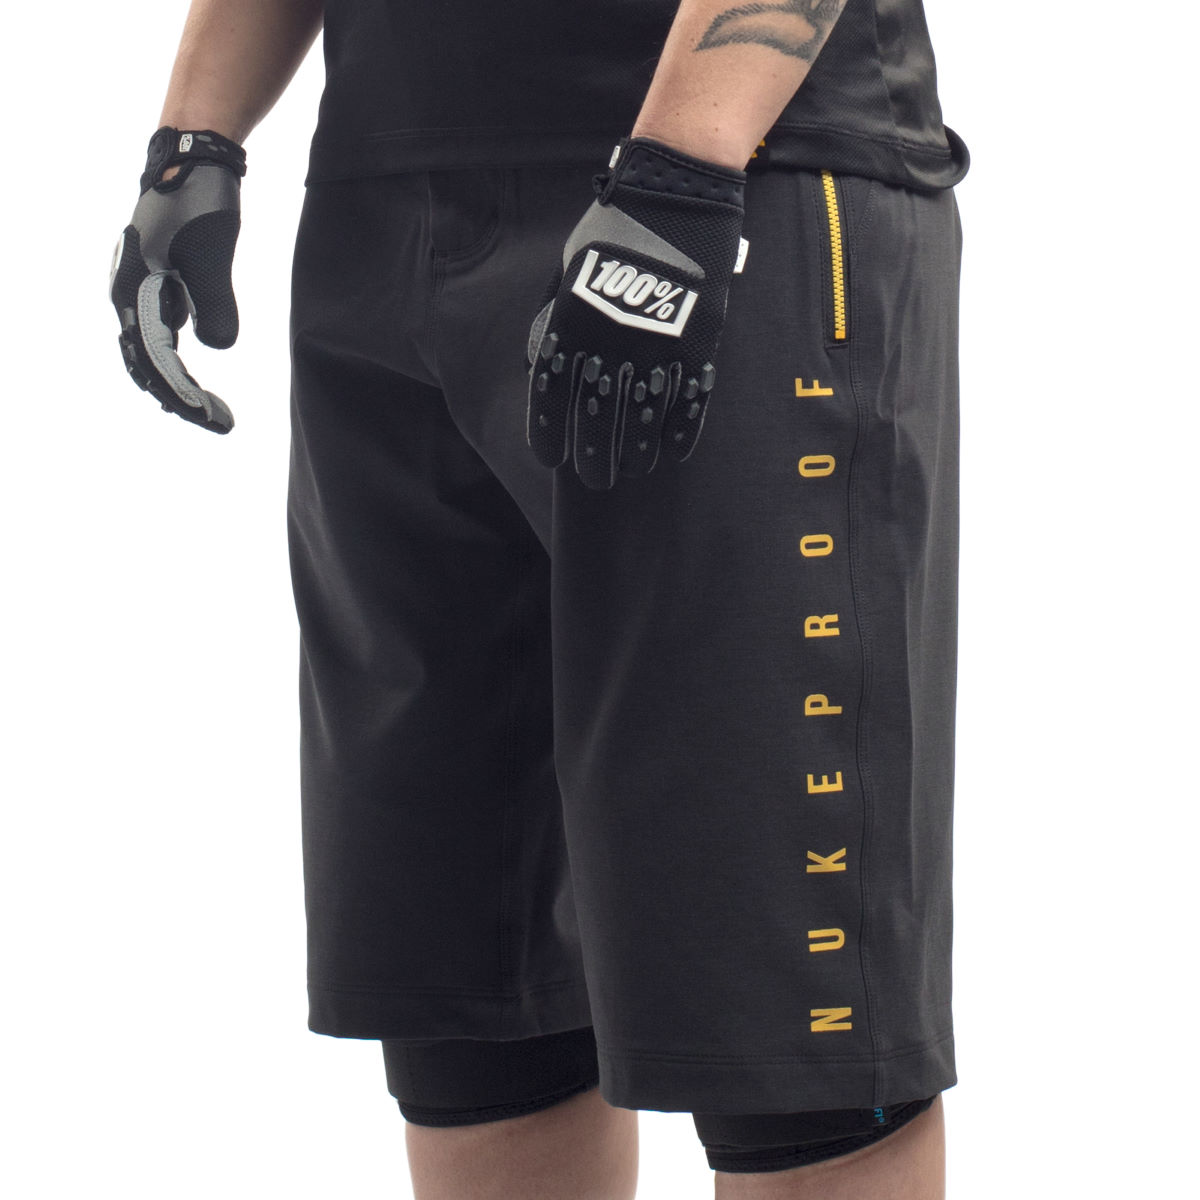 Nukeproof Nukeproof Blackline Womens Shorts - Black   Baggy Shorts